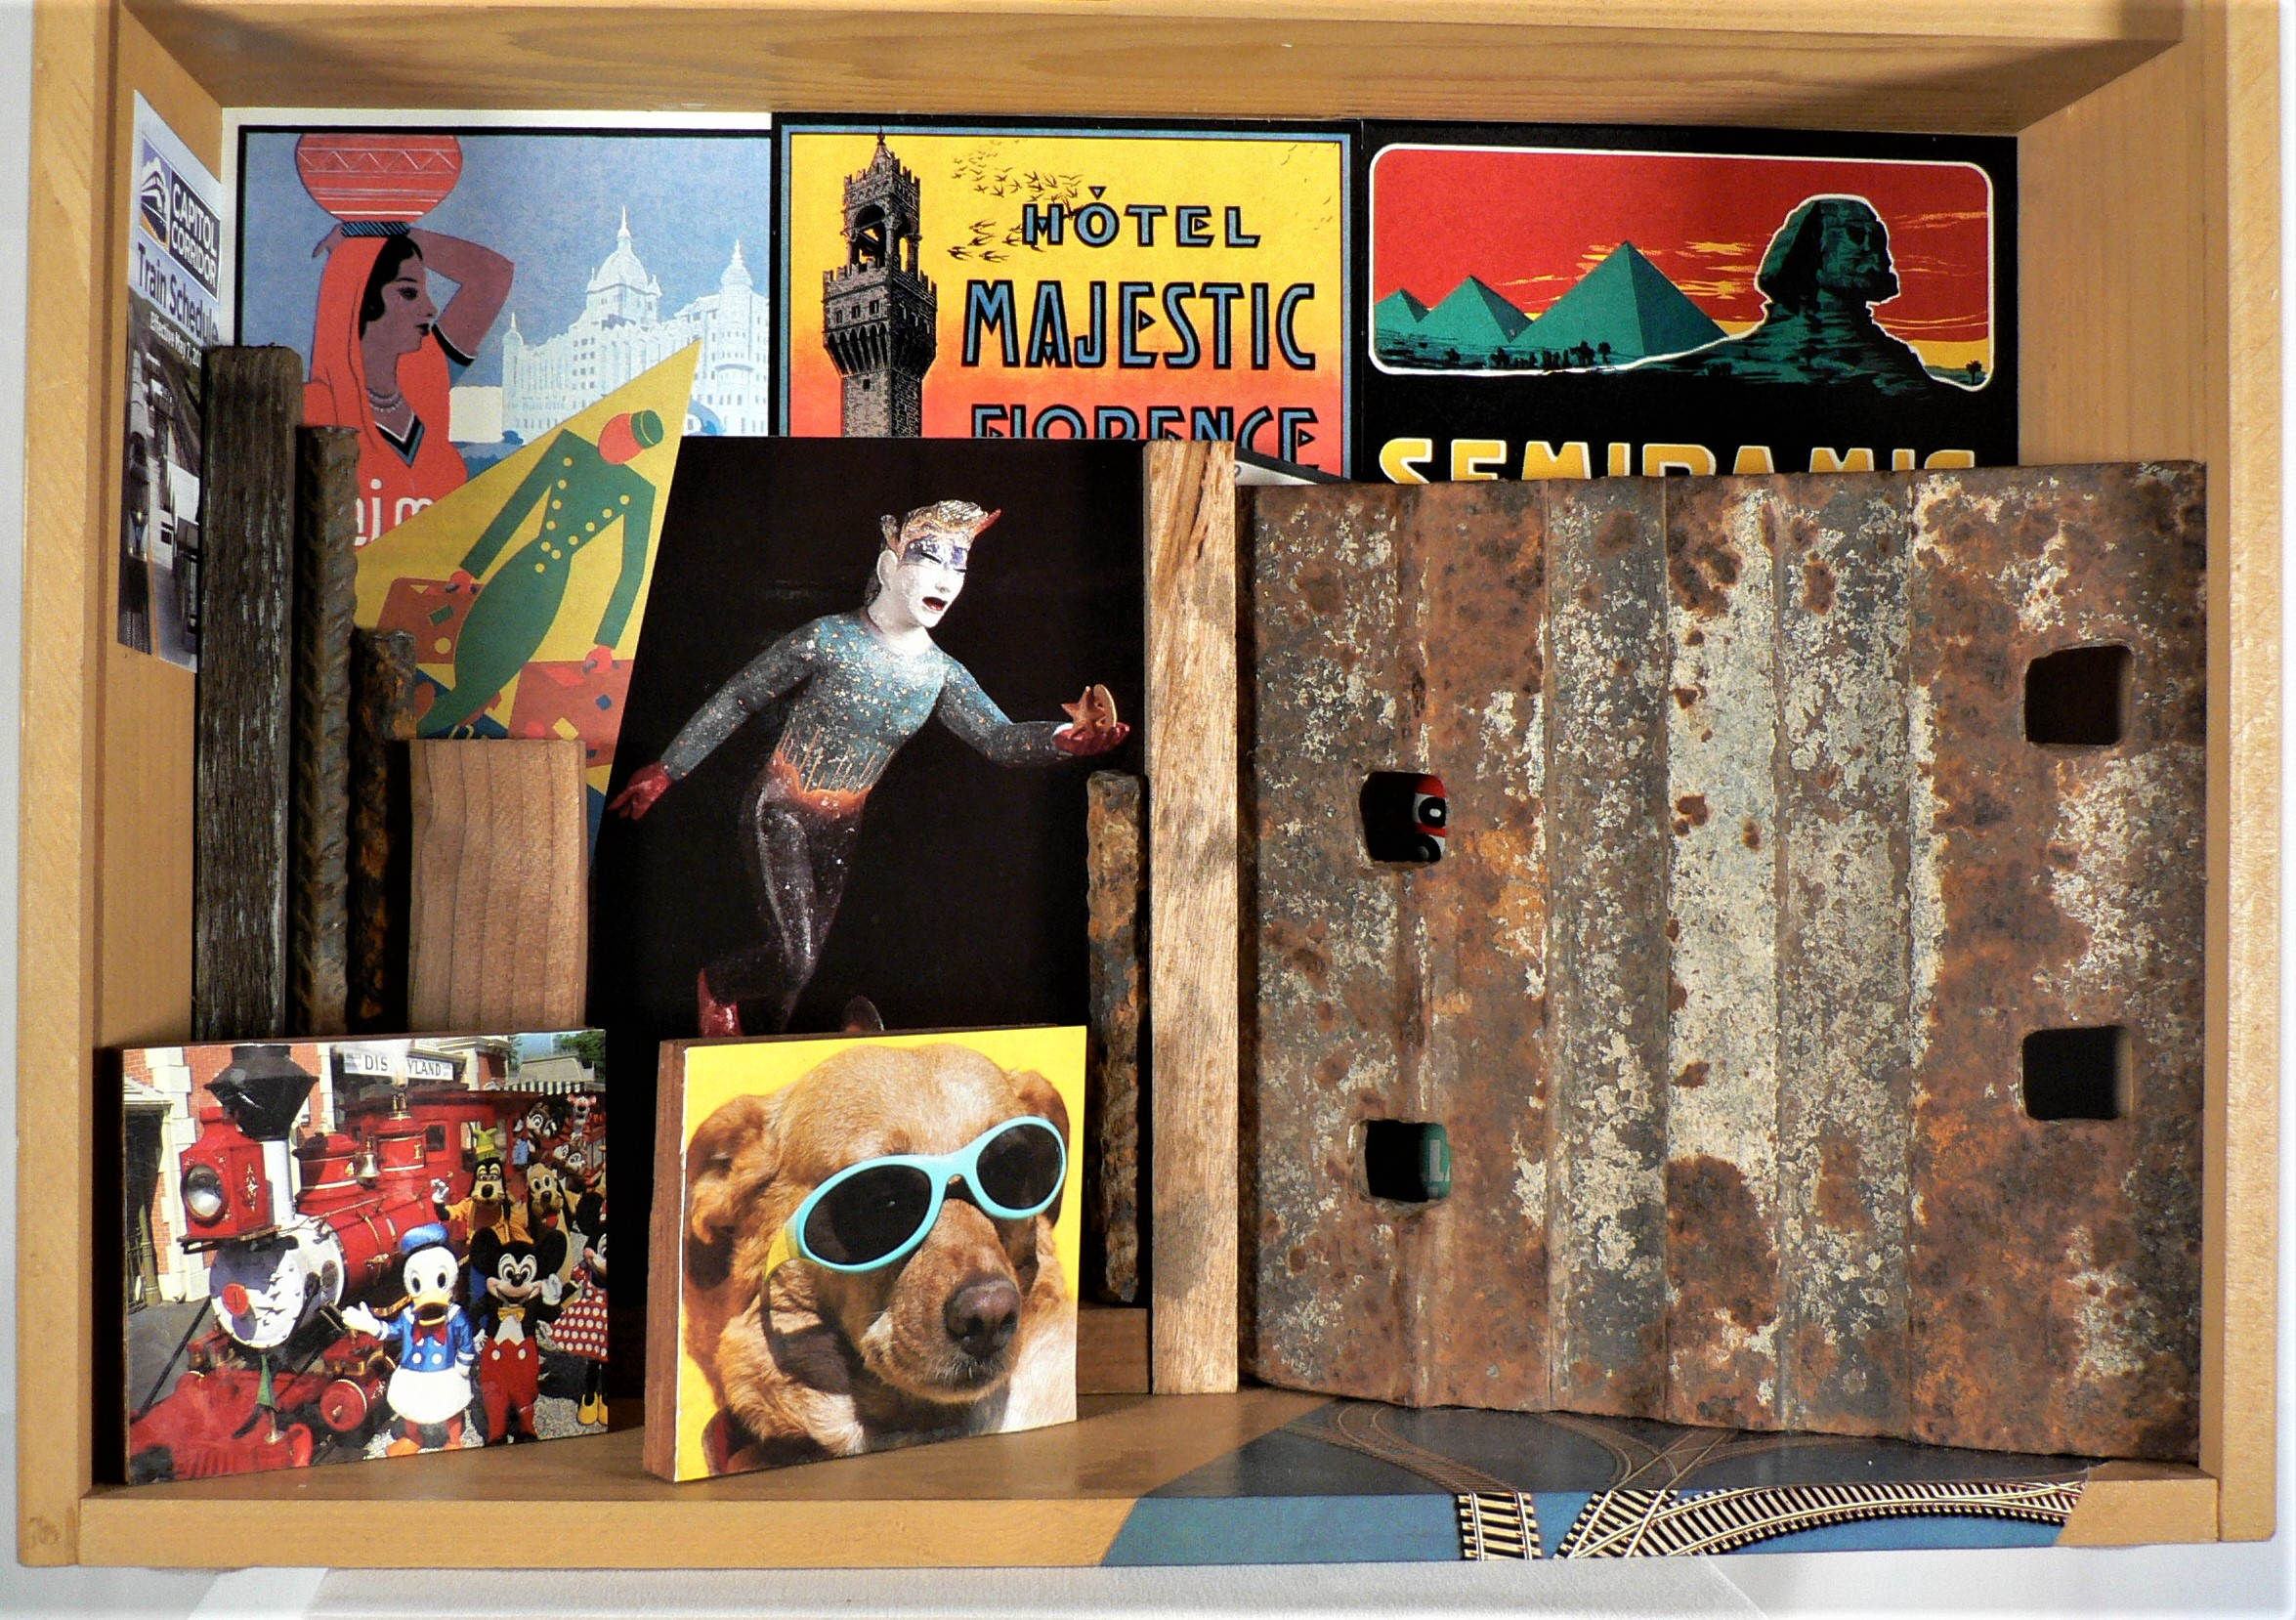 "Lost Track - ""Half the fun of travel is the esthetic of lostness."" – Paul TherouxMaterials: California rice wood box; metal trolley segment; paper luggage label reproductions (Saturn Press); paper Conoco ad image; art postcard of Yoshio Taylor ceramic statute (Natsoulas Gallery); Disneyland postcard; Wag Hotel postcard; rebar; paper; acrylic paint. Dimensions: 13""H x 17.5""W x 5""D. Created: December 2018.Status: For Sale ($150)"